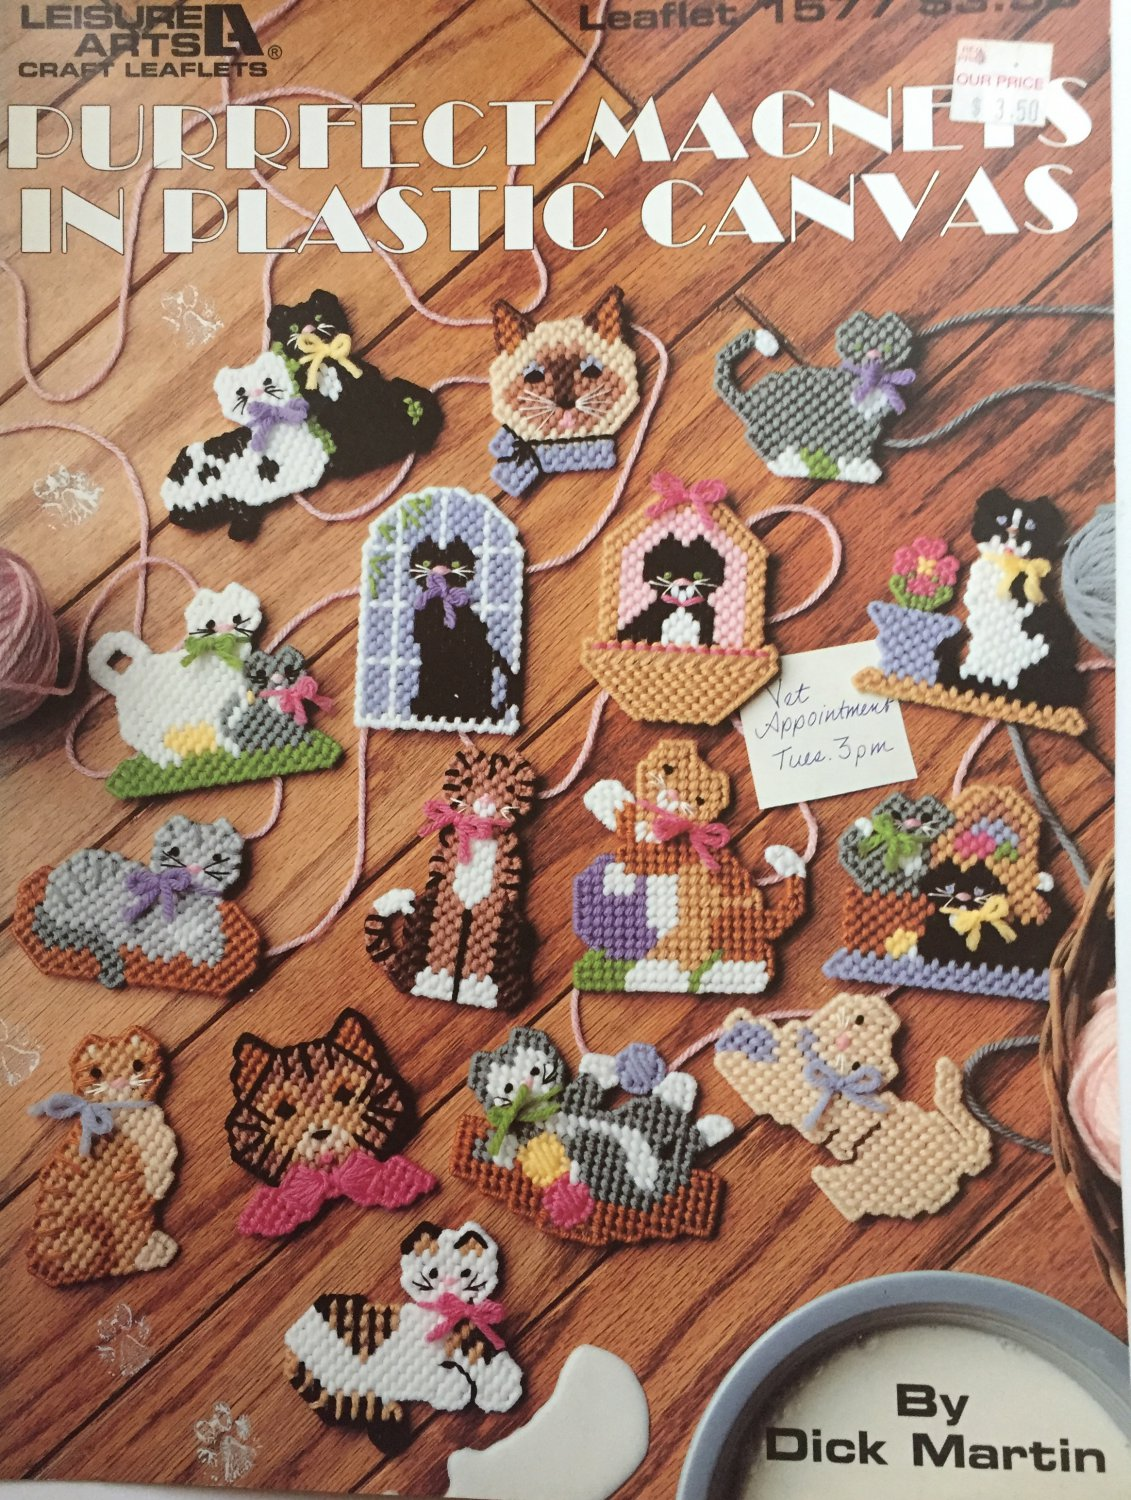 Leisure Arts 1577 Magnets for Plastic Canvas Pattern Purrfect cats kittens